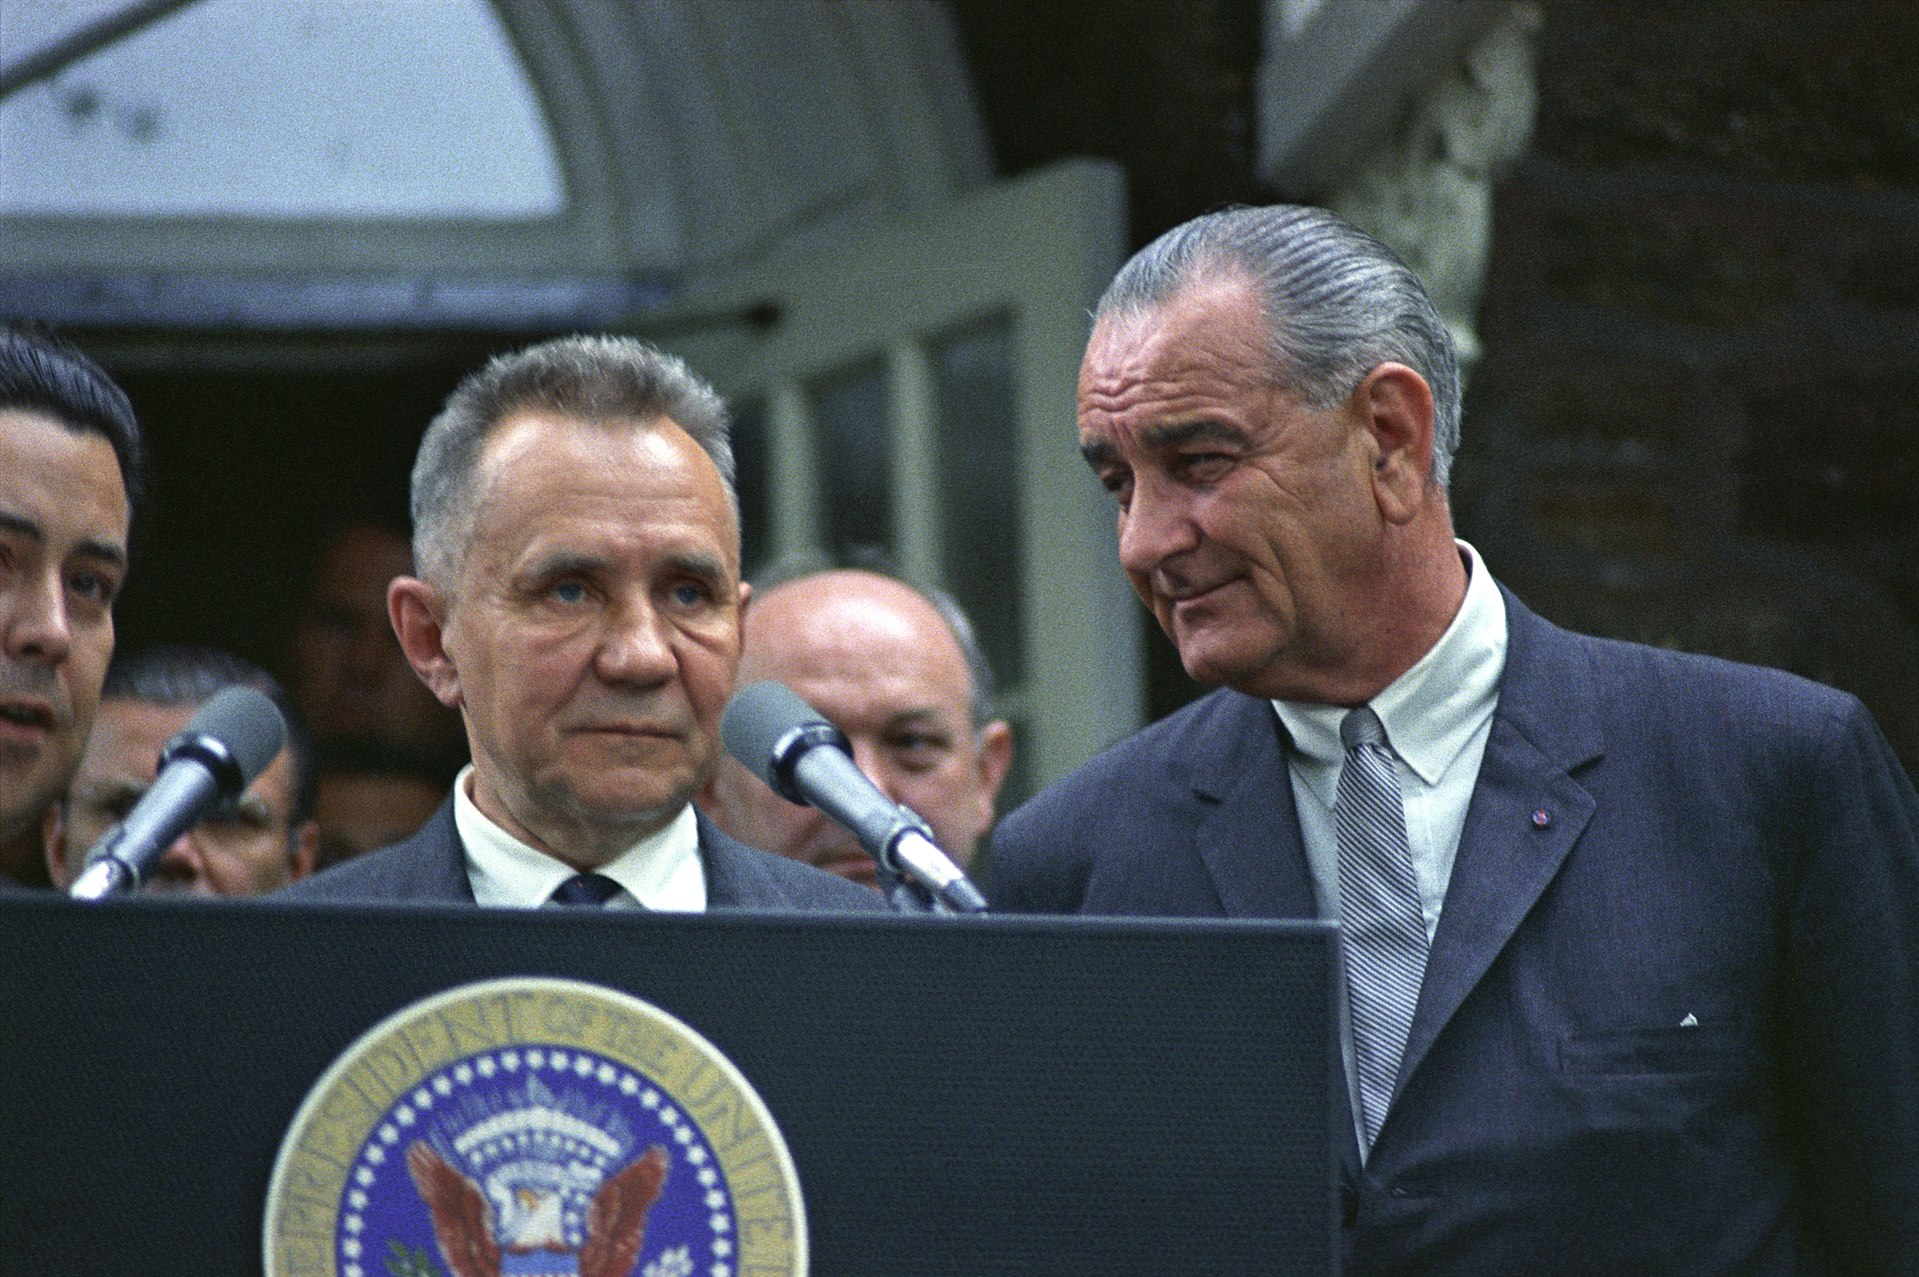 Soviet Premier Alexei Kosygin with U.S. President Lyndon B. Johnson at the Glassboro Summit Conference where the two representatives discussed the possibilities of a peace settlement